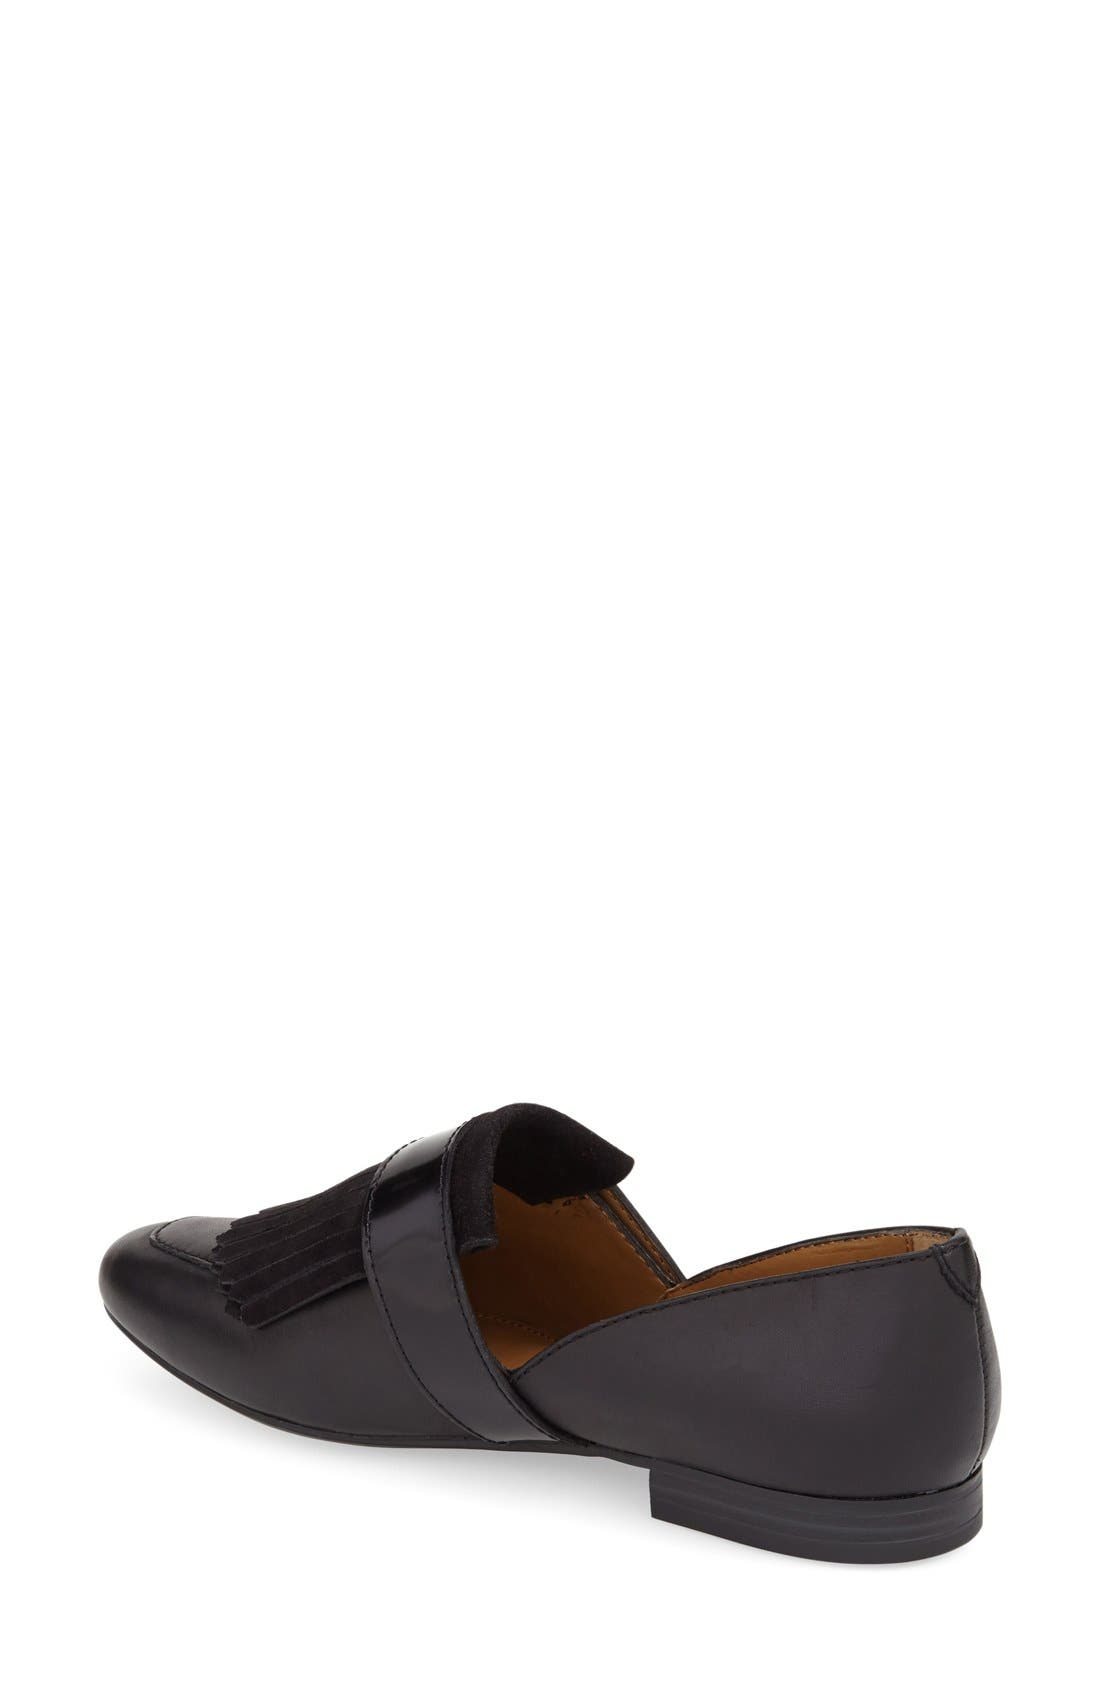 'Harlow' Kiltie Leather Loafer,                             Alternate thumbnail 2, color,                             BLACK LEATHER